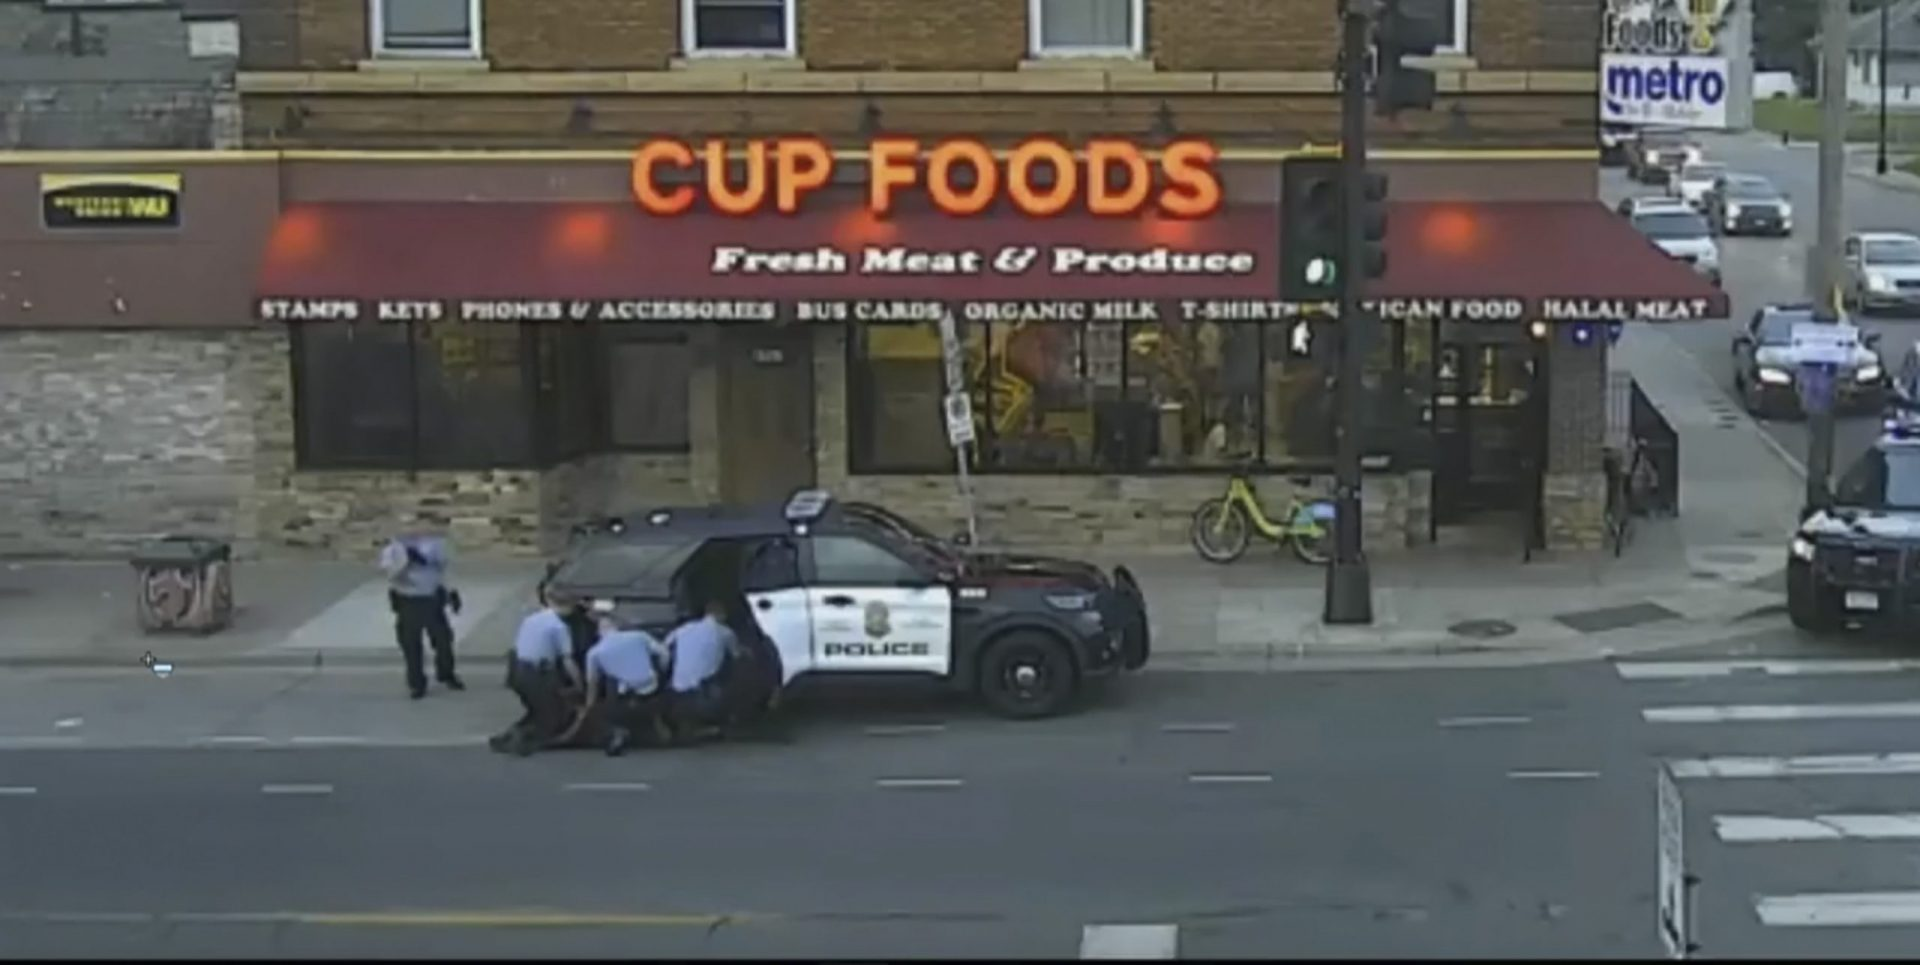 In this image from Minneapolis city surveillance video, Minneapolis police are seen attempting to take George Floyd into custody May 25, 2020, in Minneapolis, Minn. The video was shown as Hennepin County Judge Peter Cahill presides Monday, March 29, 2021, in the trial of former Minneapolis police officer Derek Chauvin, in the death of George Floyd at the Hennepin County Courthouse in Minneapolis, Minn. (